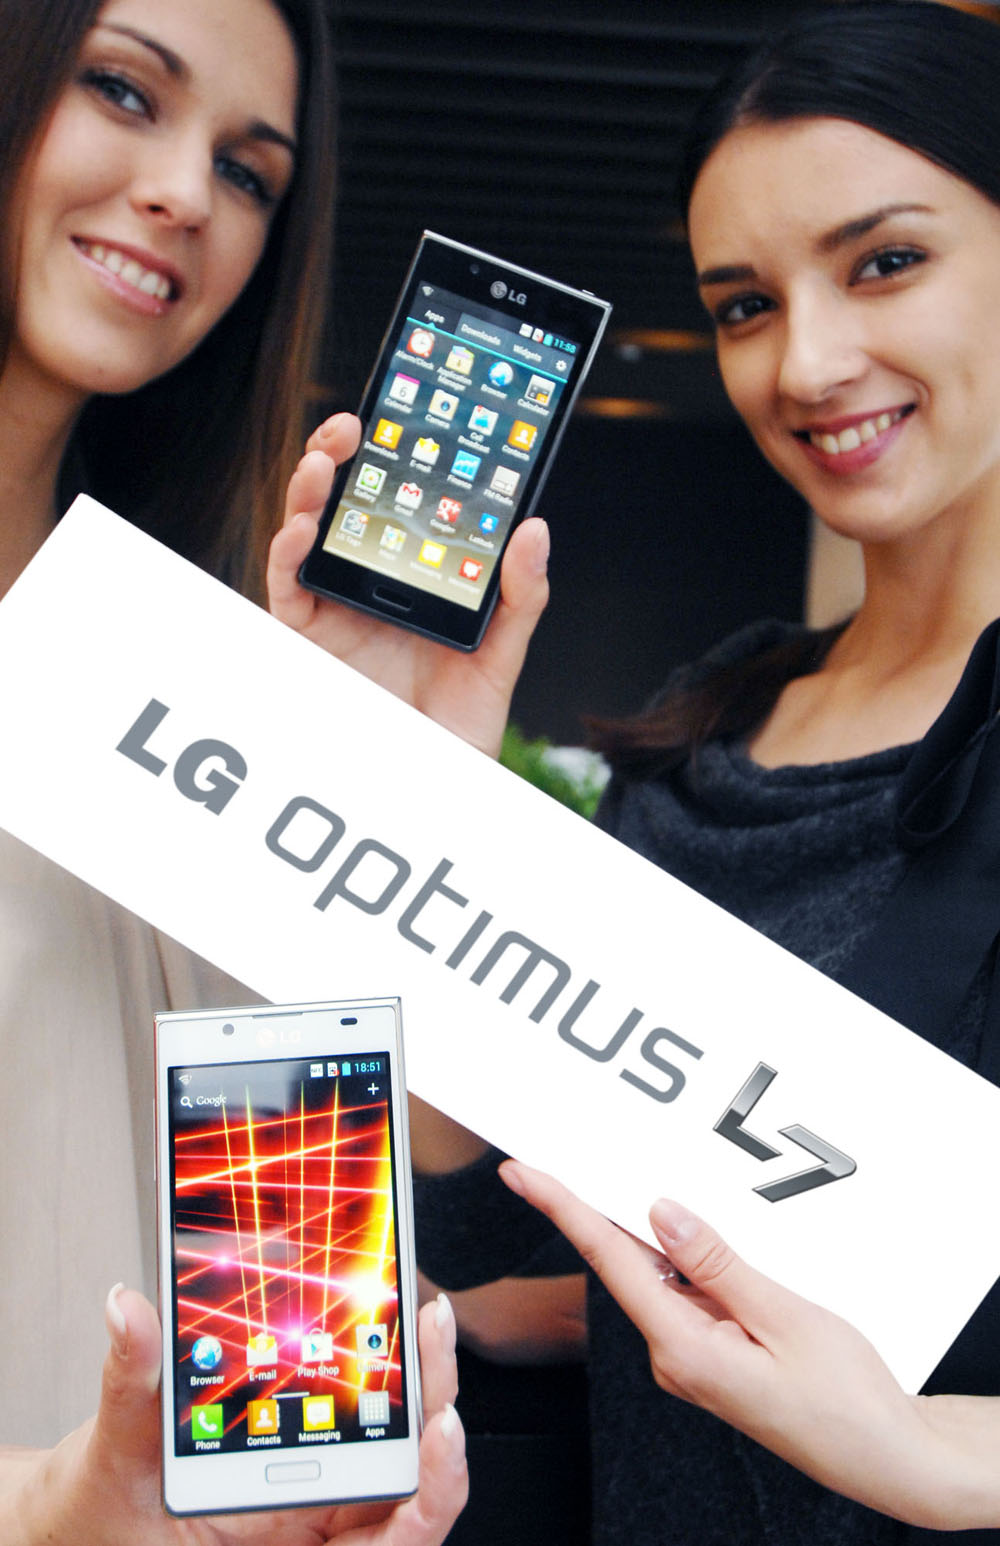 Another image of two female models holding the LG OPTIMUS L7 smartphone and its brand name panel at the launch event